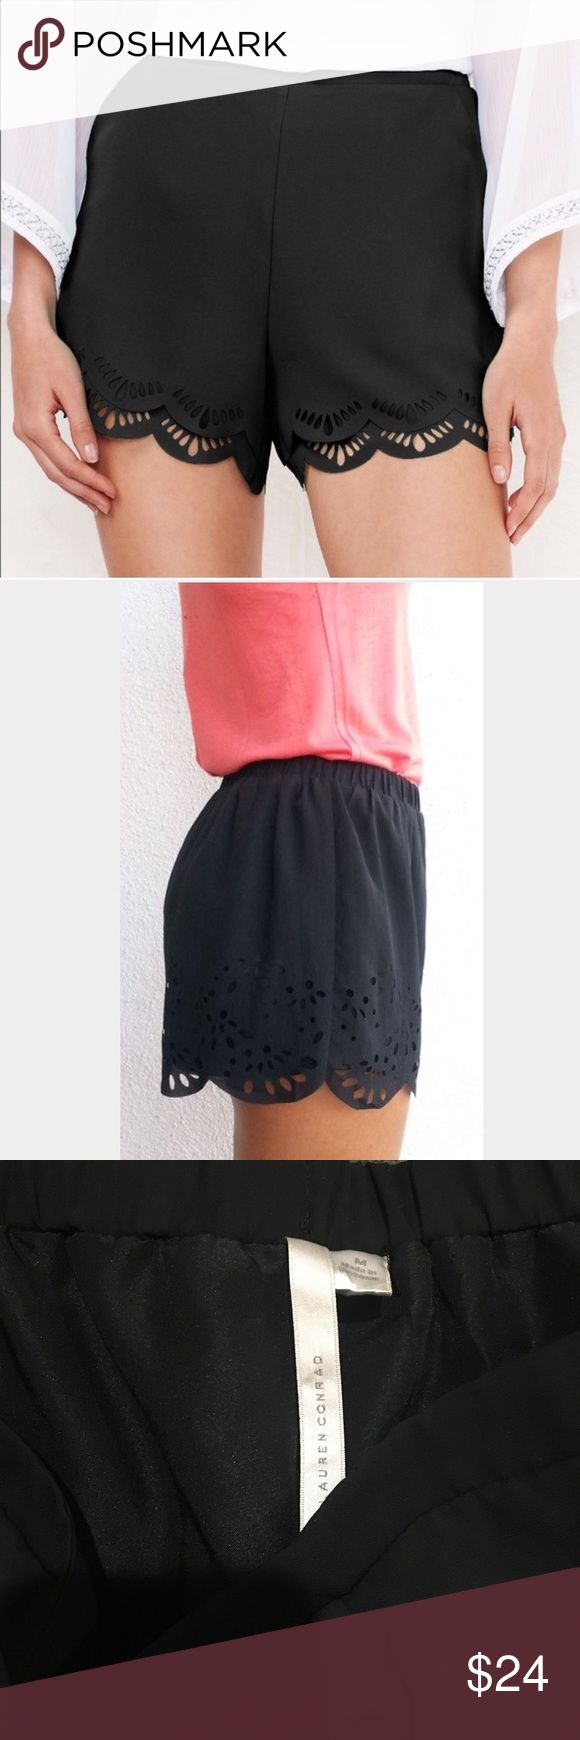 """LC Lauren Conrad scalloped laser cut shorts LC Lauren Conrad double tiered shorts. Laser cut detail at hem. Lined. Elastic waist. Pockets. Poly. No condition issues, worn once or twice. Length down side is about 14.5"""". Waist is 15"""" flat and unstretched. Flat front and flattering cut.  Easy to dress up or down. LC Lauren Conrad Shorts"""